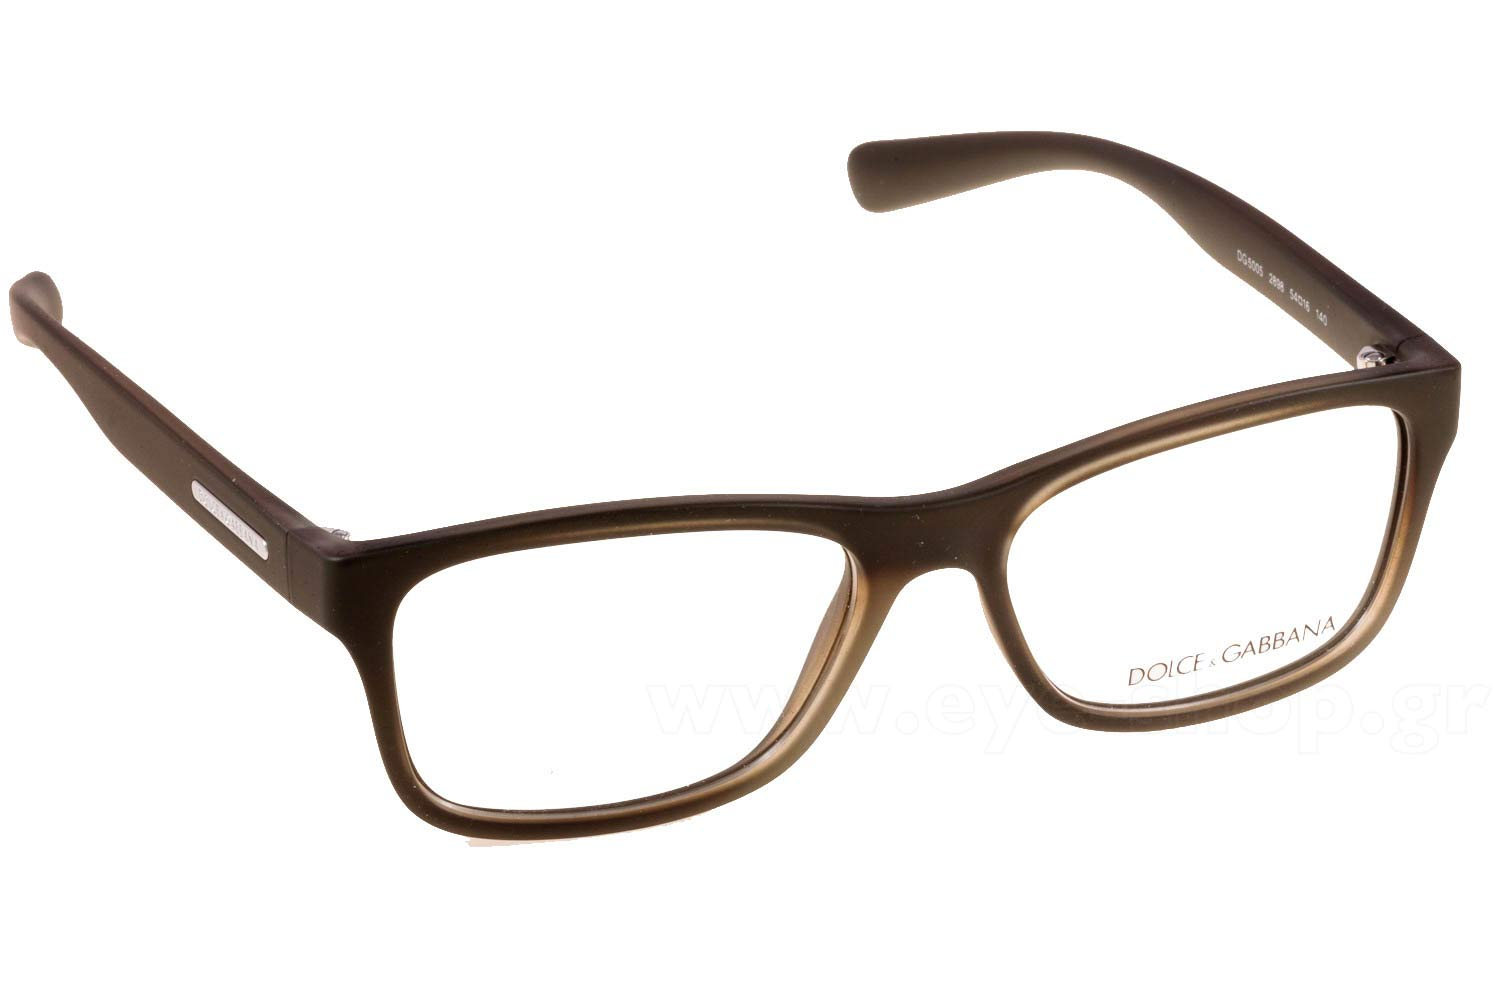 2d7b0094f603 Dolce Gabbana Frames For Men - Ontario Active School Travel